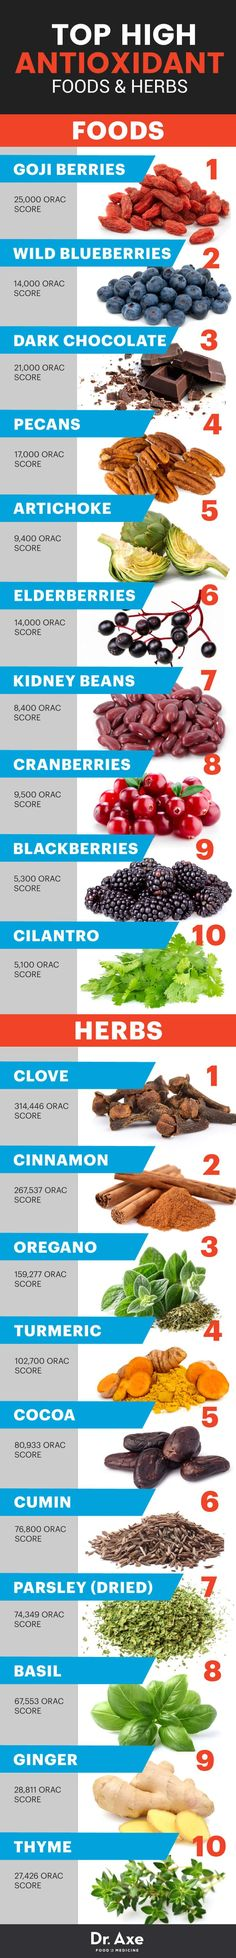 Top high antioxidant foods and herbs - Dr. Axe